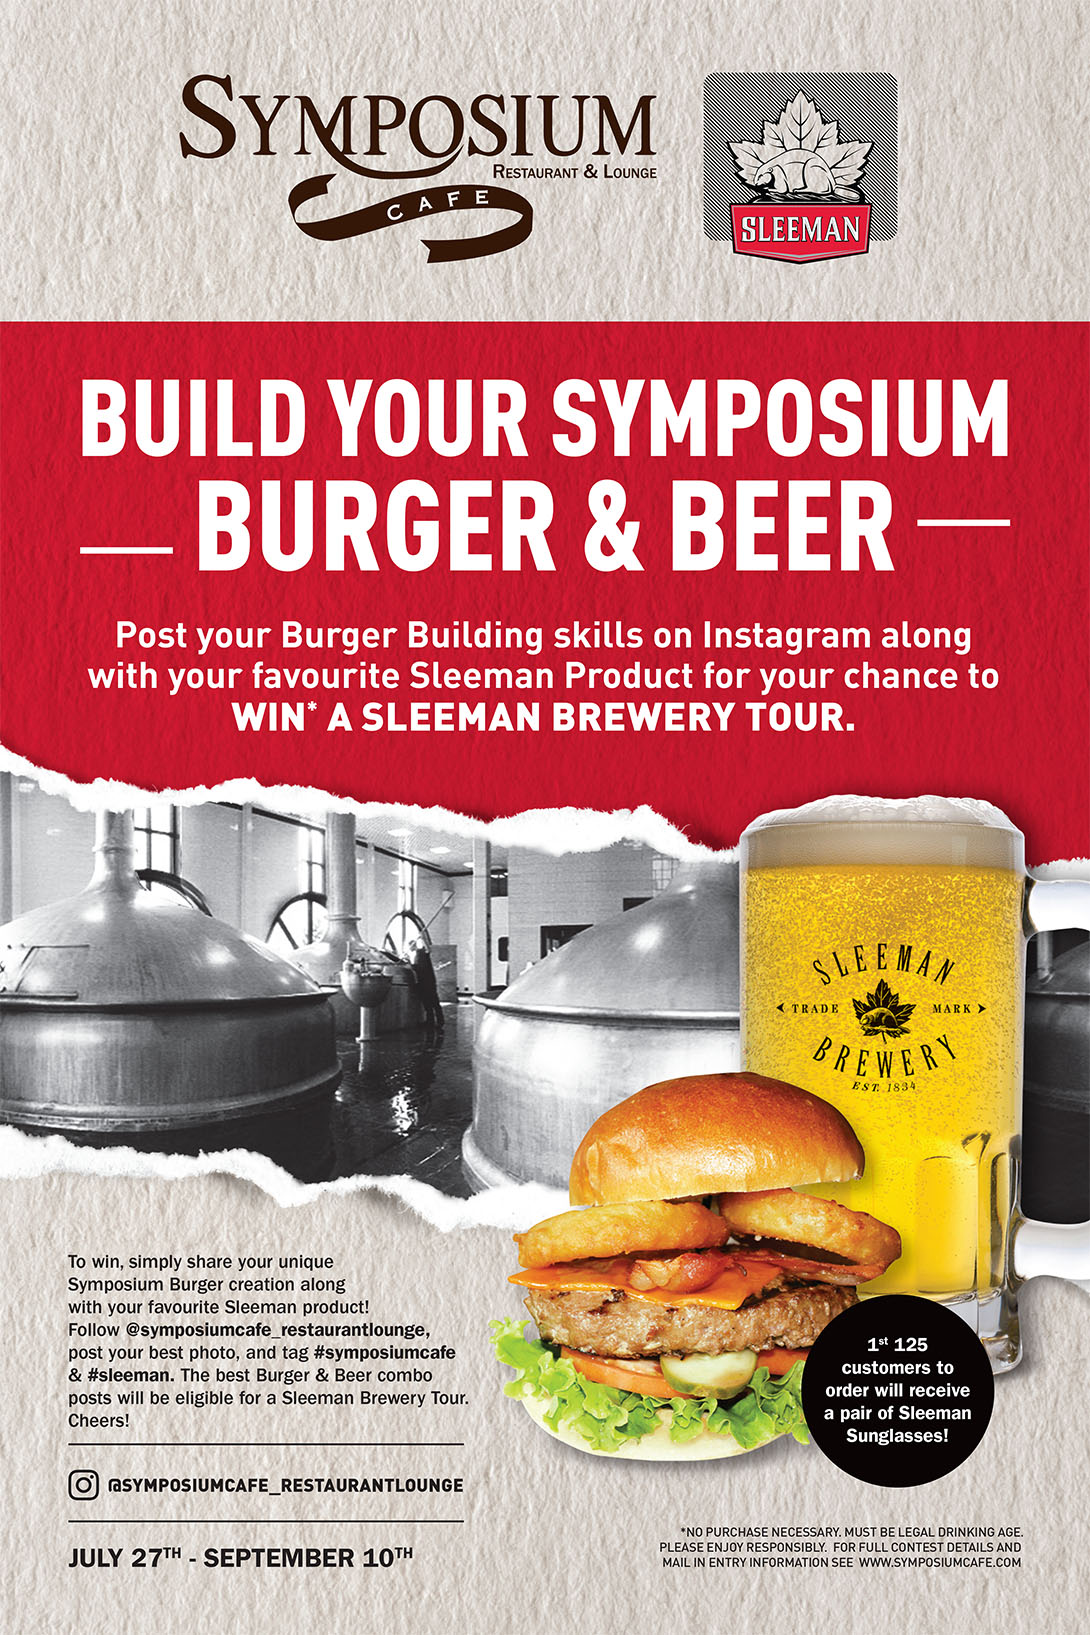 BUILD YOUR SYMPOSIUM BURGER & BEER & WIN A SLEEMAN BREWERY TOUR!